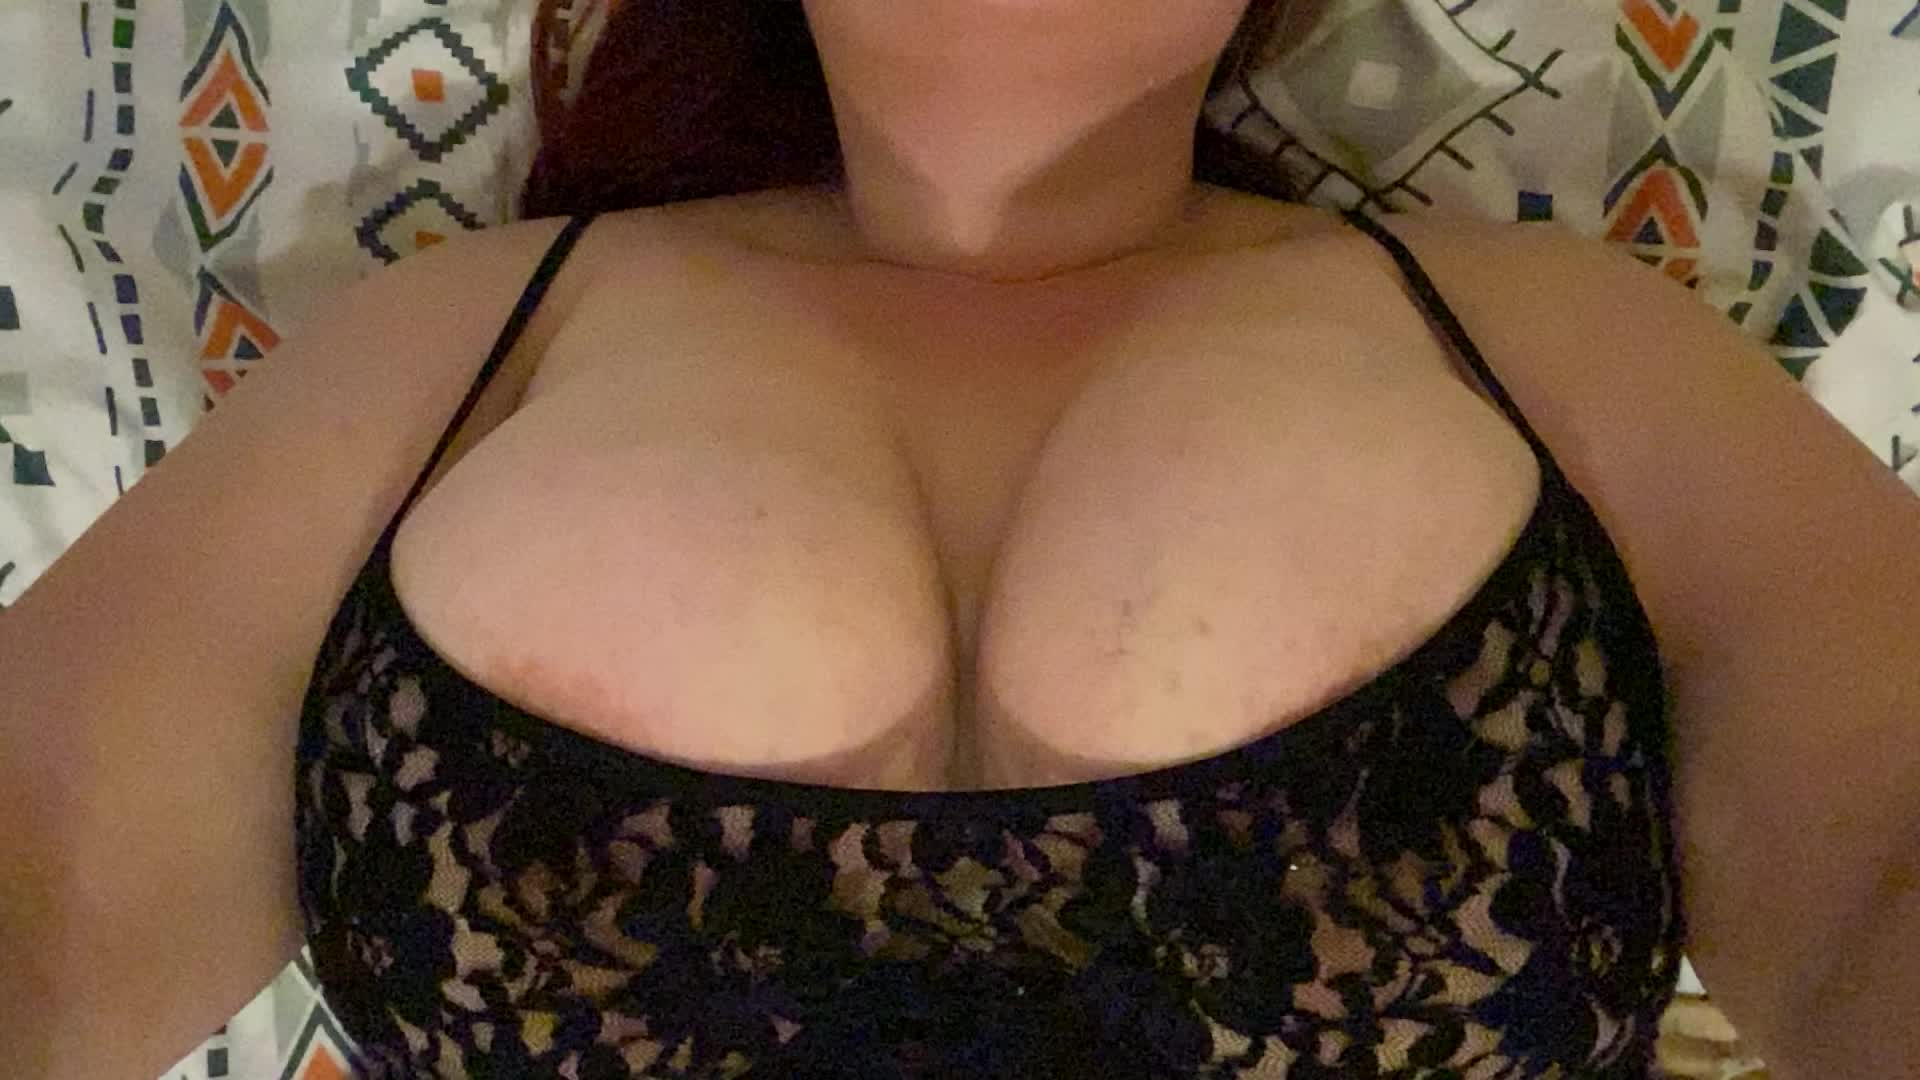 Titty Tuesday! They don't want to be contained 😏